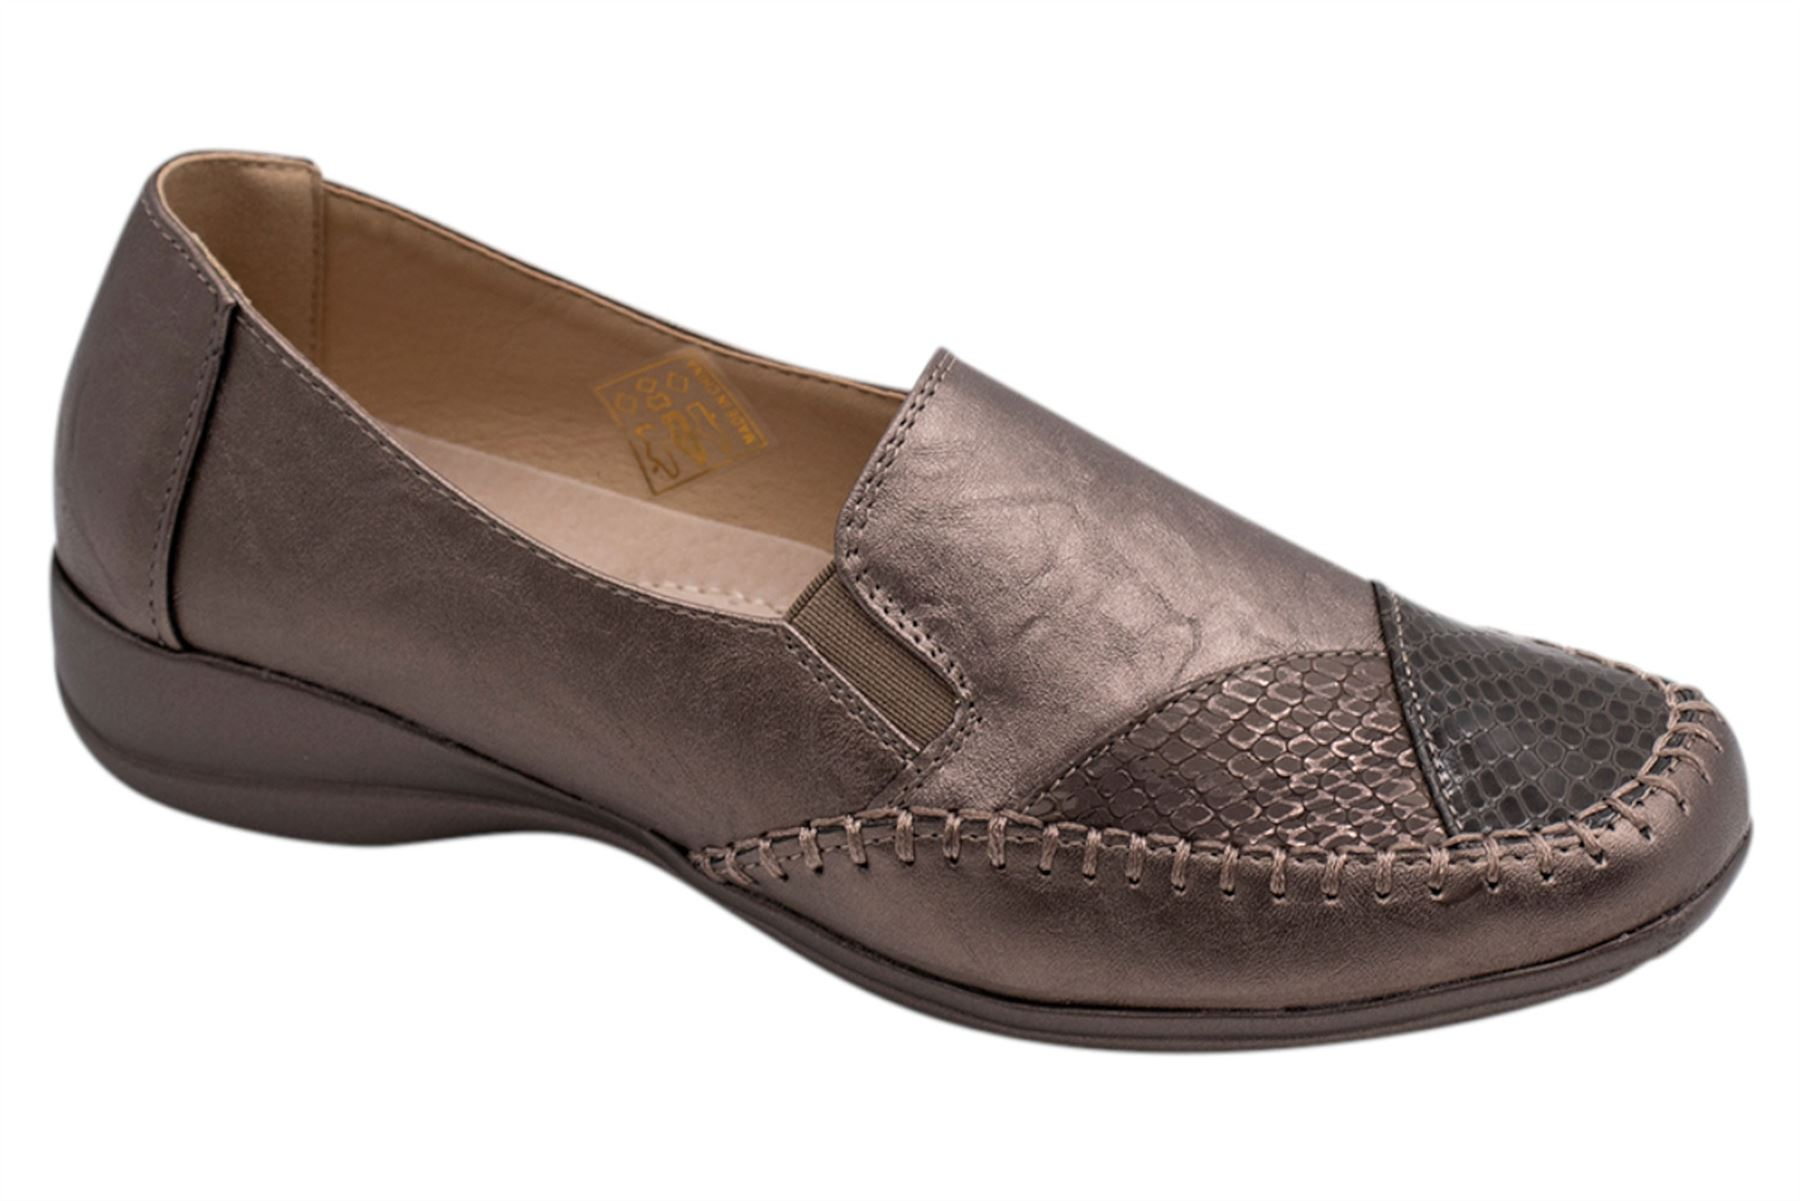 Womens-Flat-Shoes-Ladies-Pumps-Office-Work-Casual-Slip-On-Loafer-Size thumbnail 24